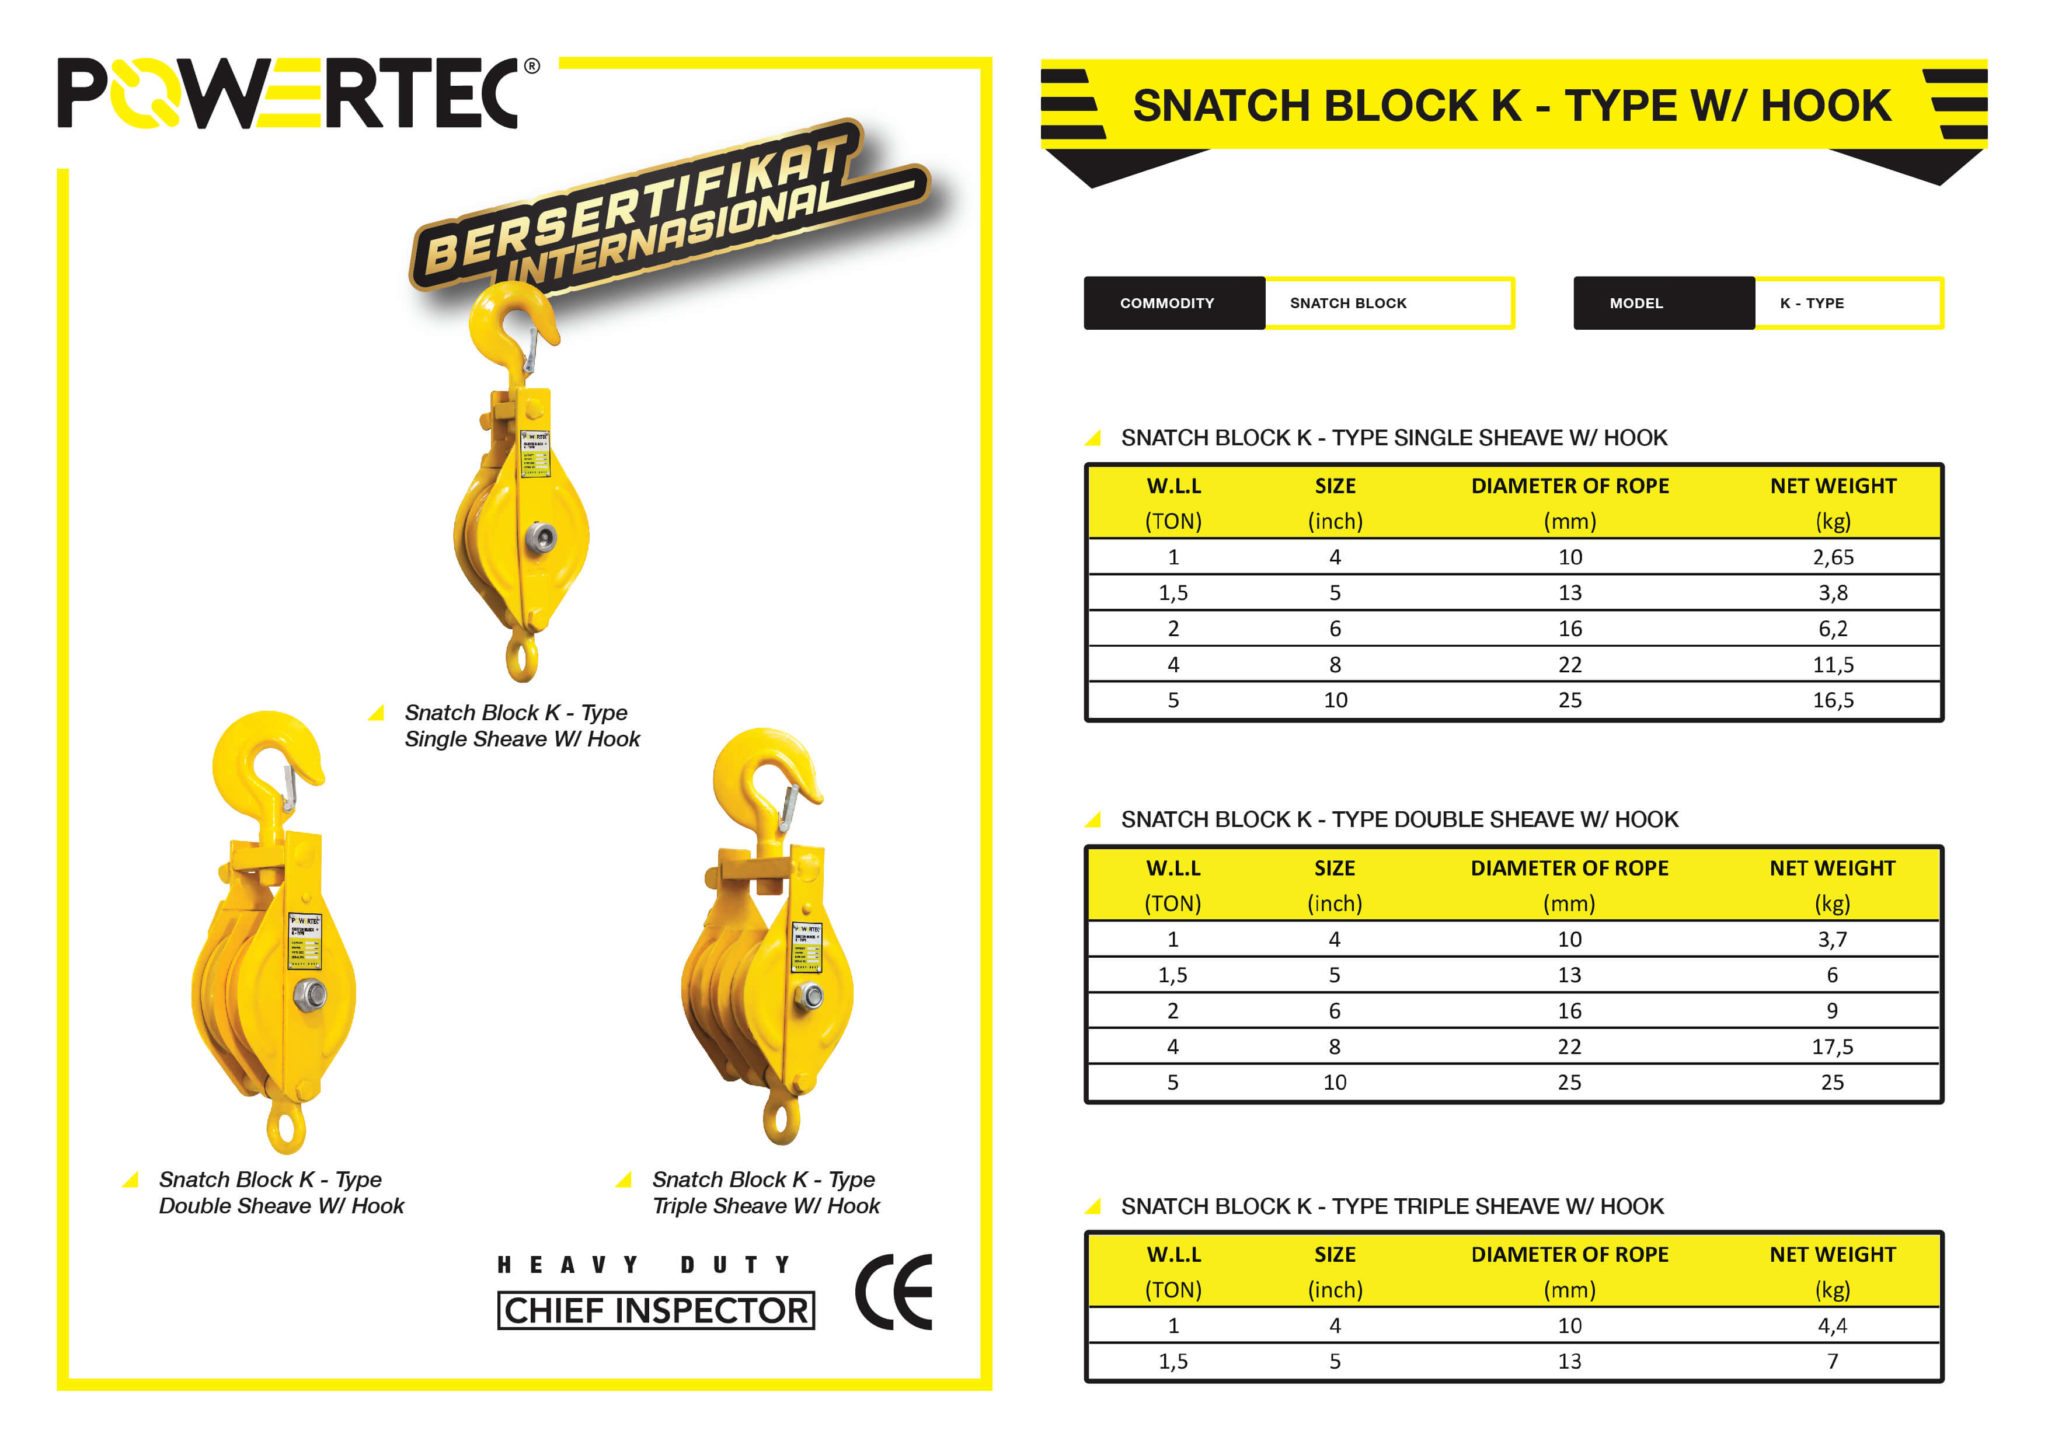 POWERTEC SNATCH BLOCK K-TYPE TRIPLE SHEAVE WITH HOOK BROCHURE